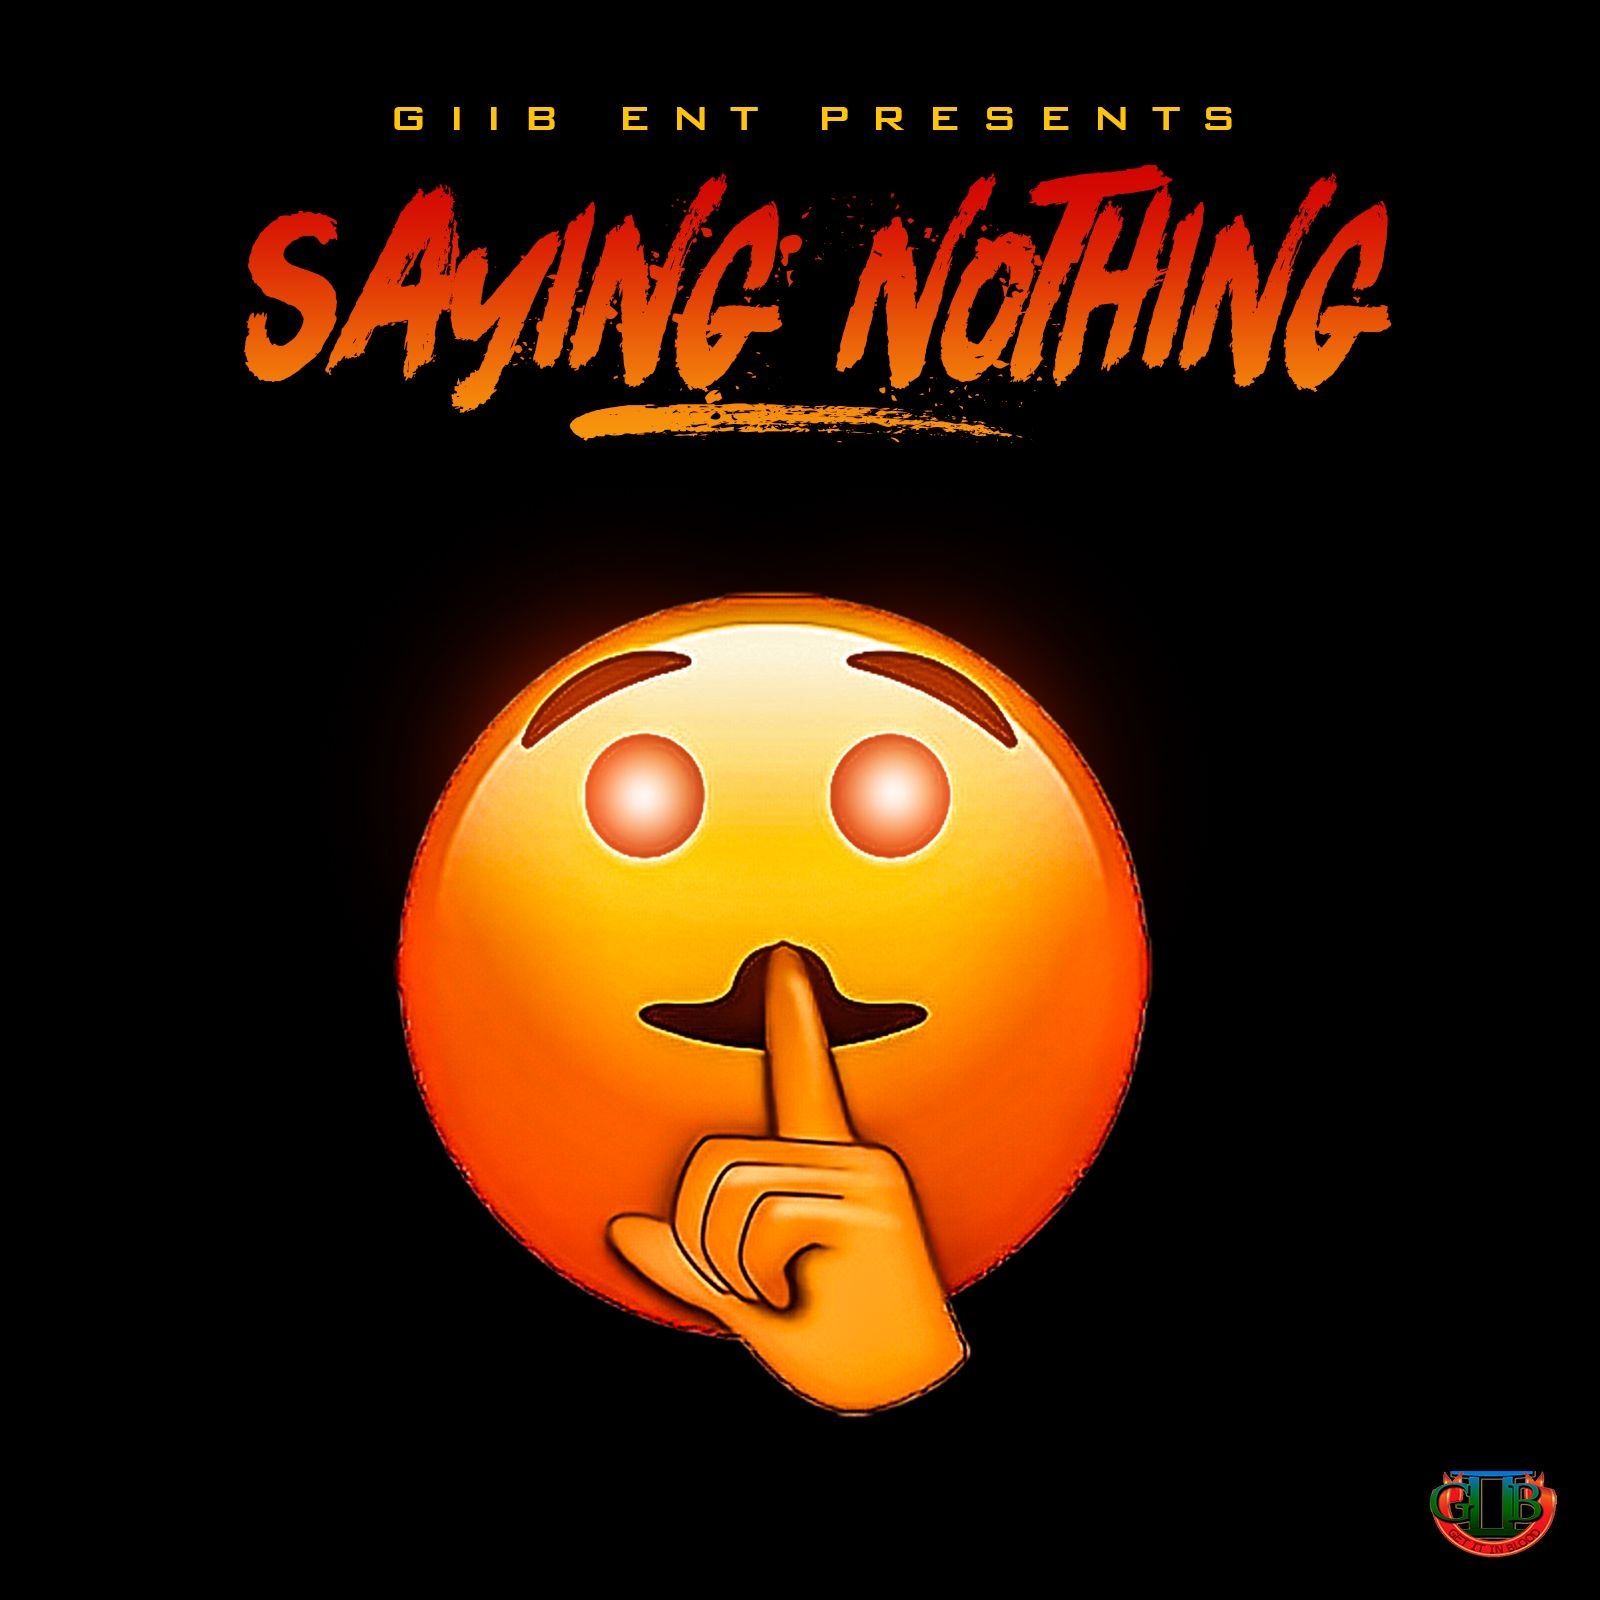 SAYING NOTHING